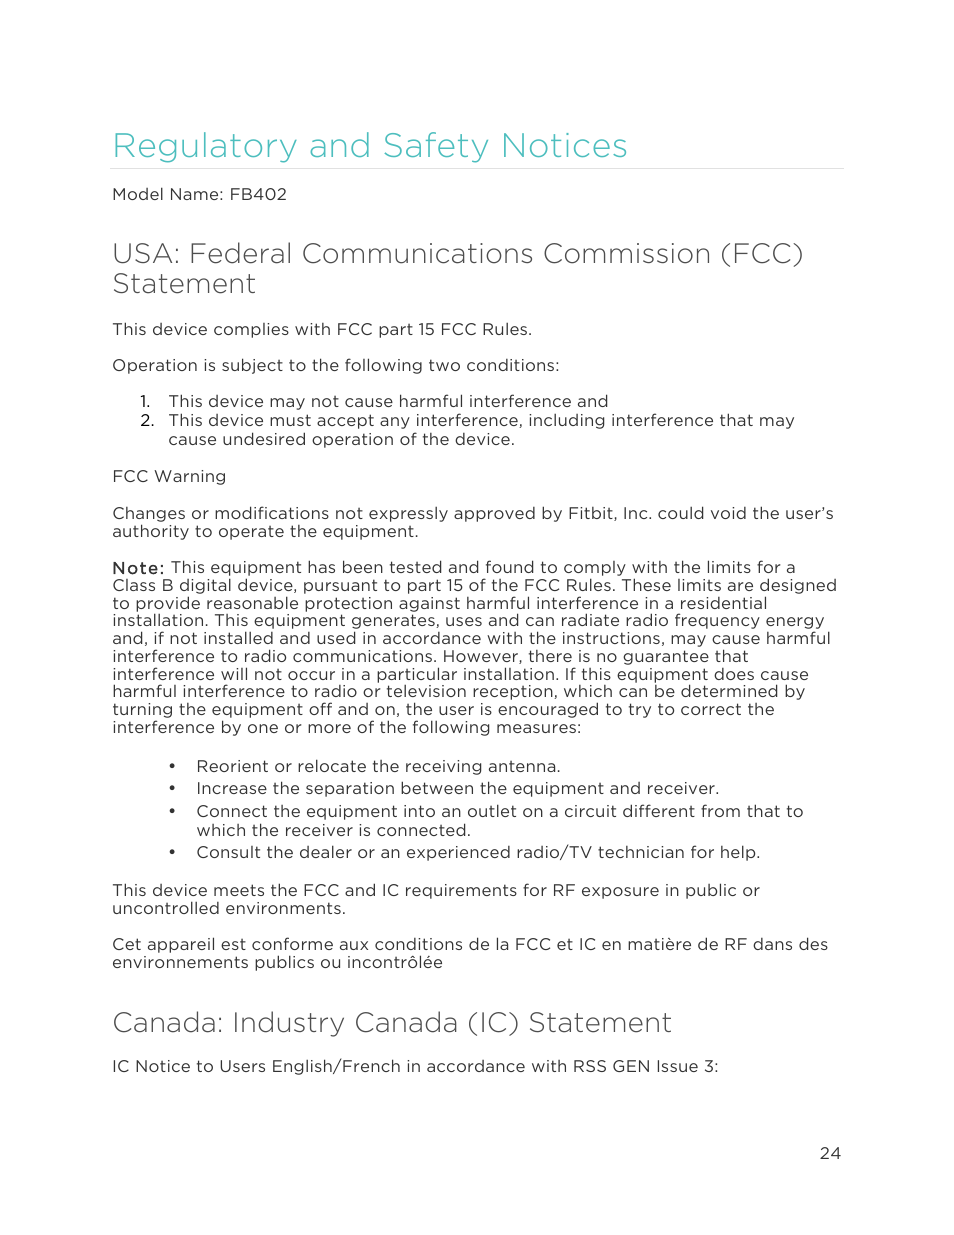 Regulatory and safety notices, Canada: industry canada (ic